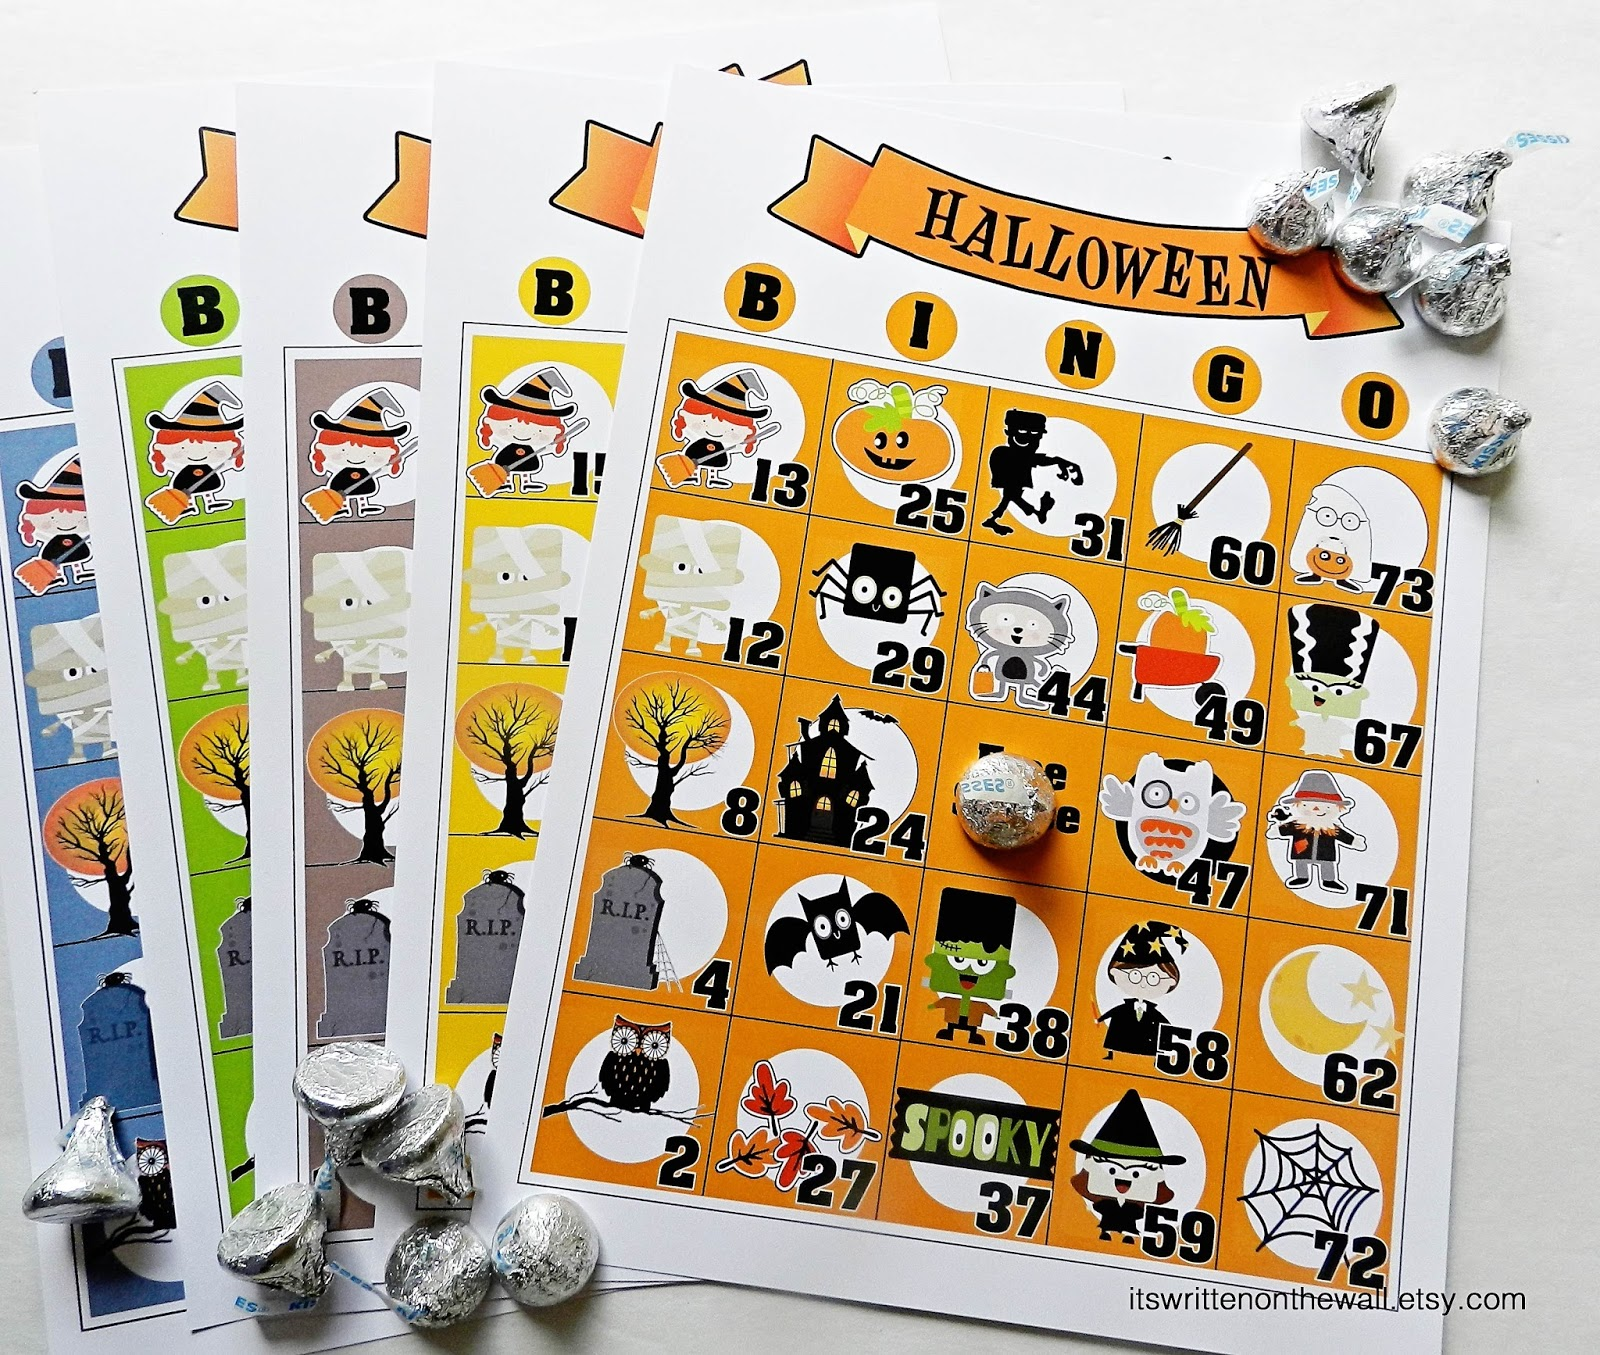 check it out halloween bingo game fun for school or home halloween parties there are several different sizes of this bingo game plus a number calling - Preschool Halloween Bingo